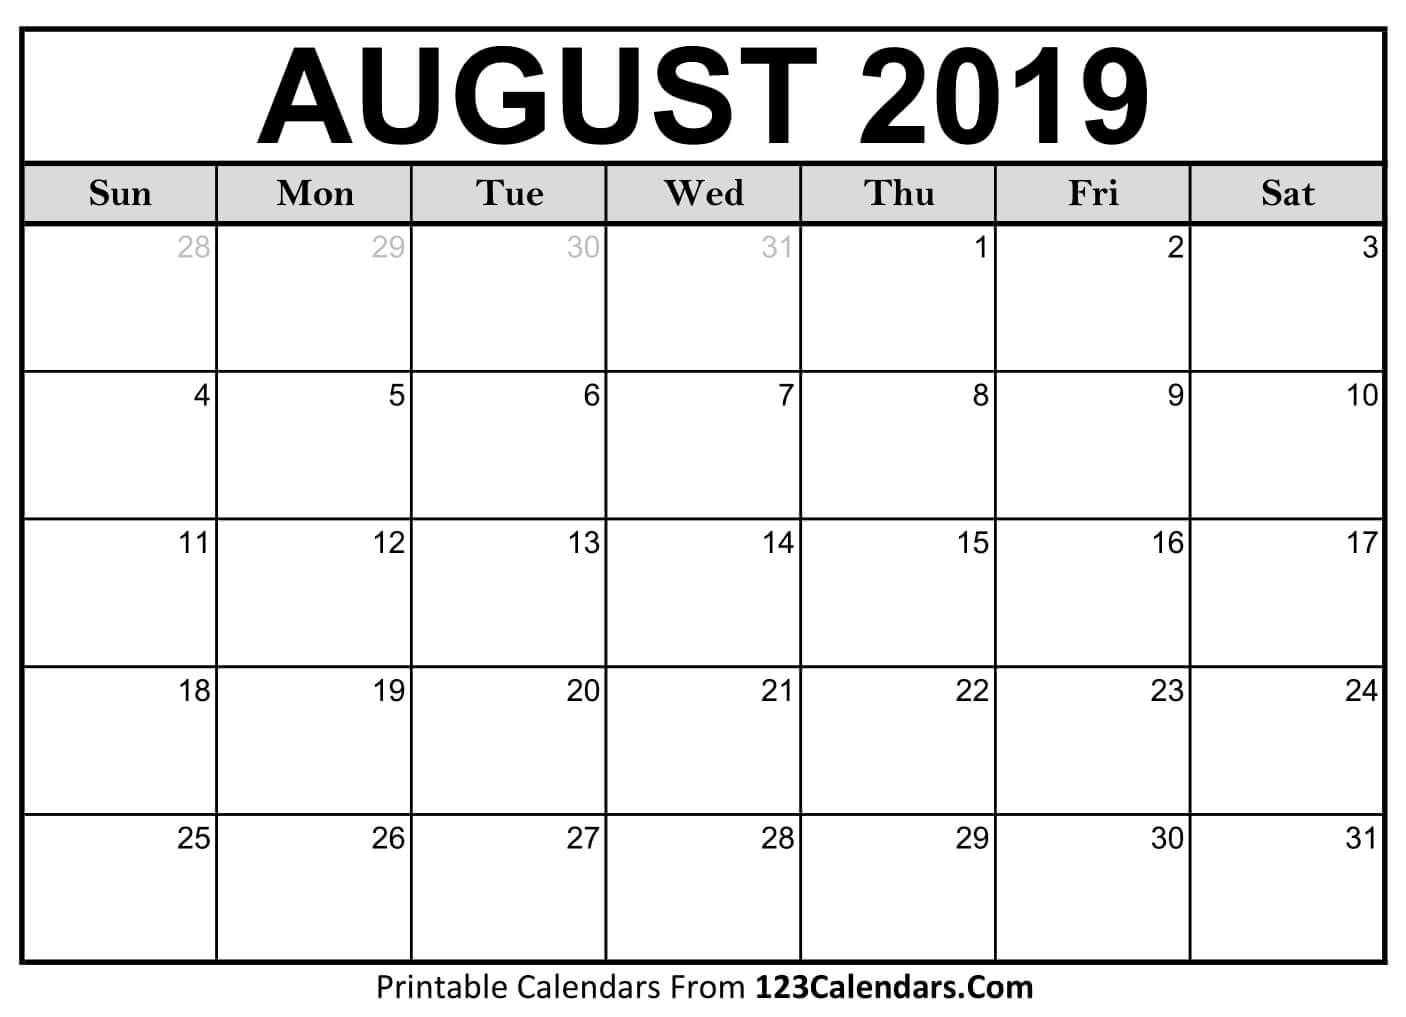 Printable August 2019 Calendar Templates - 123Calendars Make